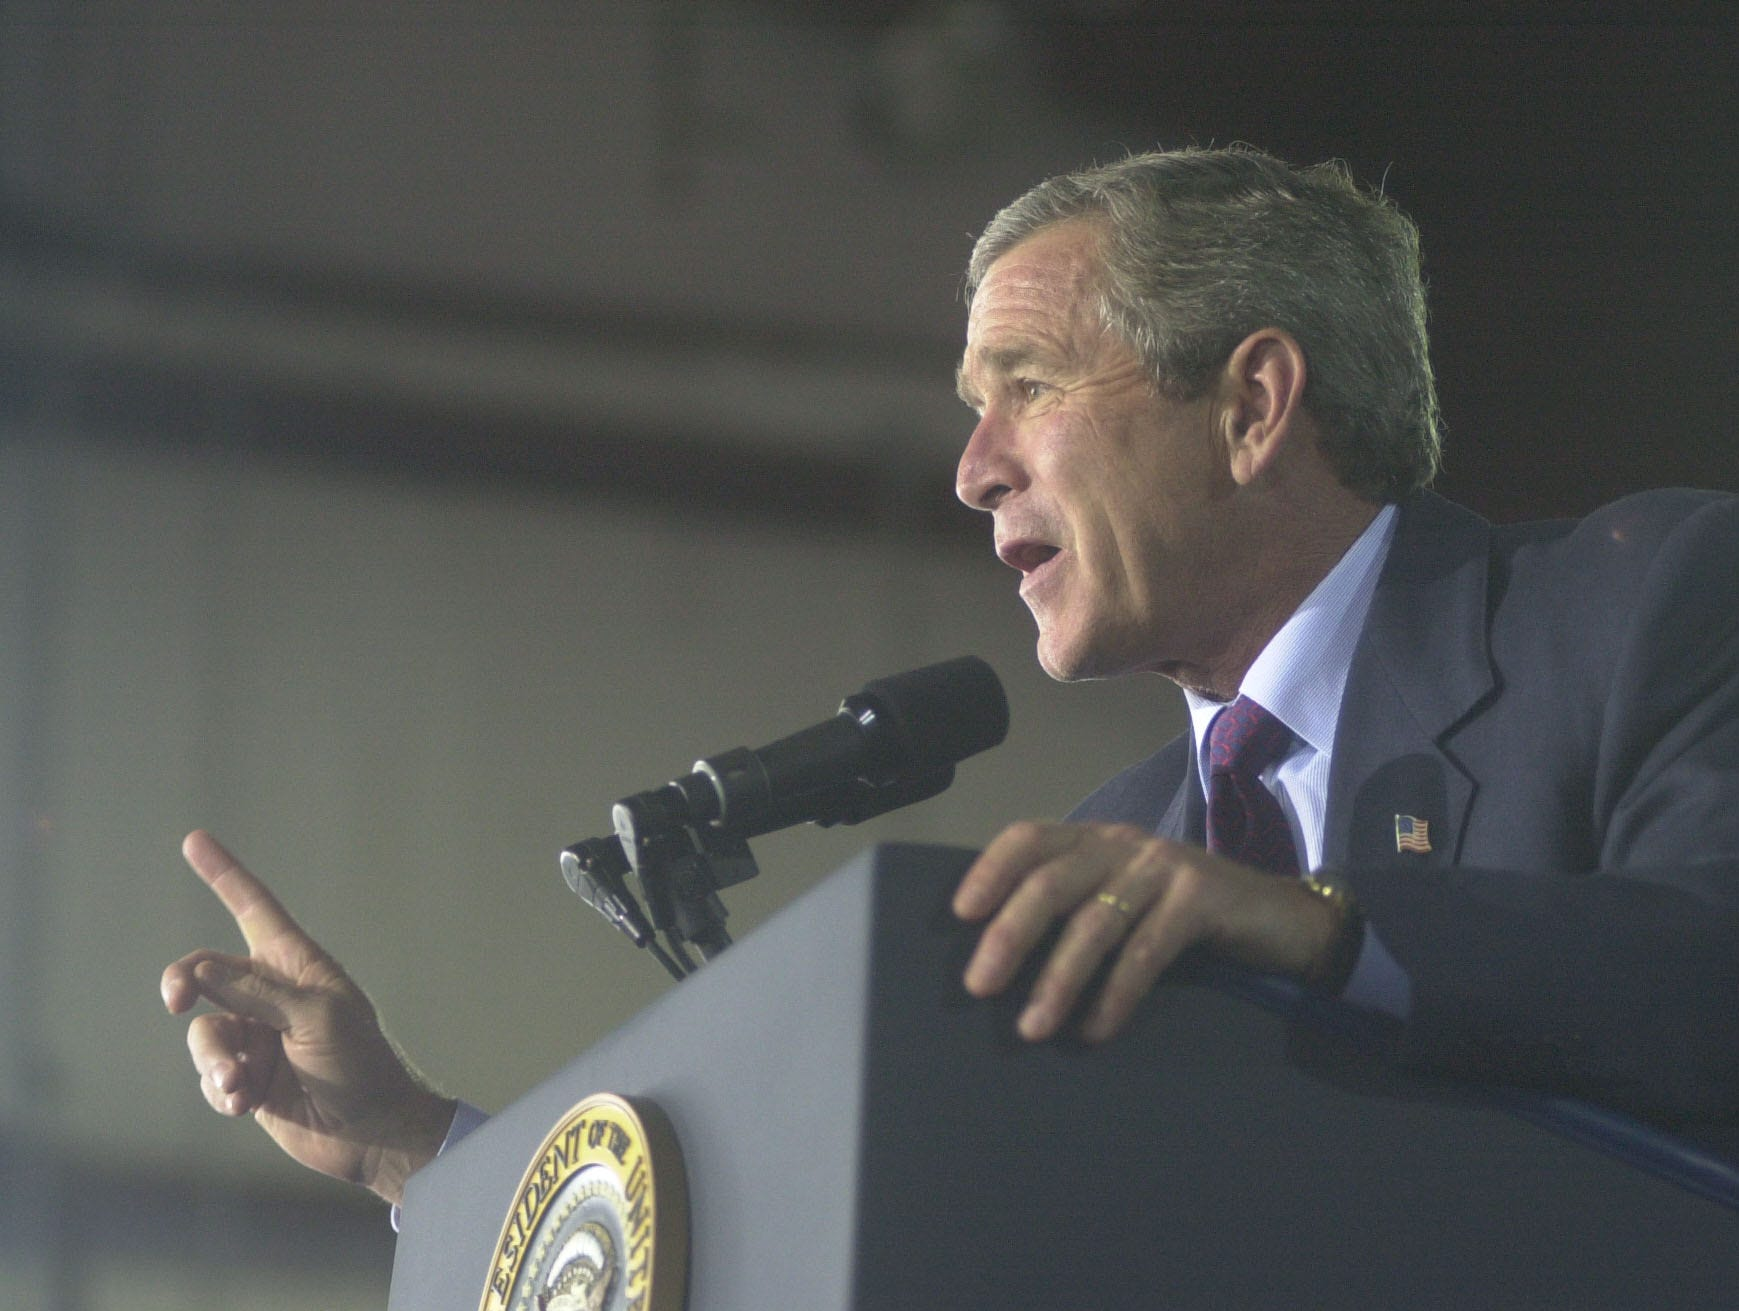 President George W. Bush addresses the crowd Tuesday, Oct., 8, 2002 at the Cherokee Aviation Hangar in Alcoa, Tenn. during a visit. Bush then travels to Knoxville where he will attend the Van Hilleary for Governor Luncheon at the Knoxville Convention Center. 2002 News-Sentinel photo by Saul Young